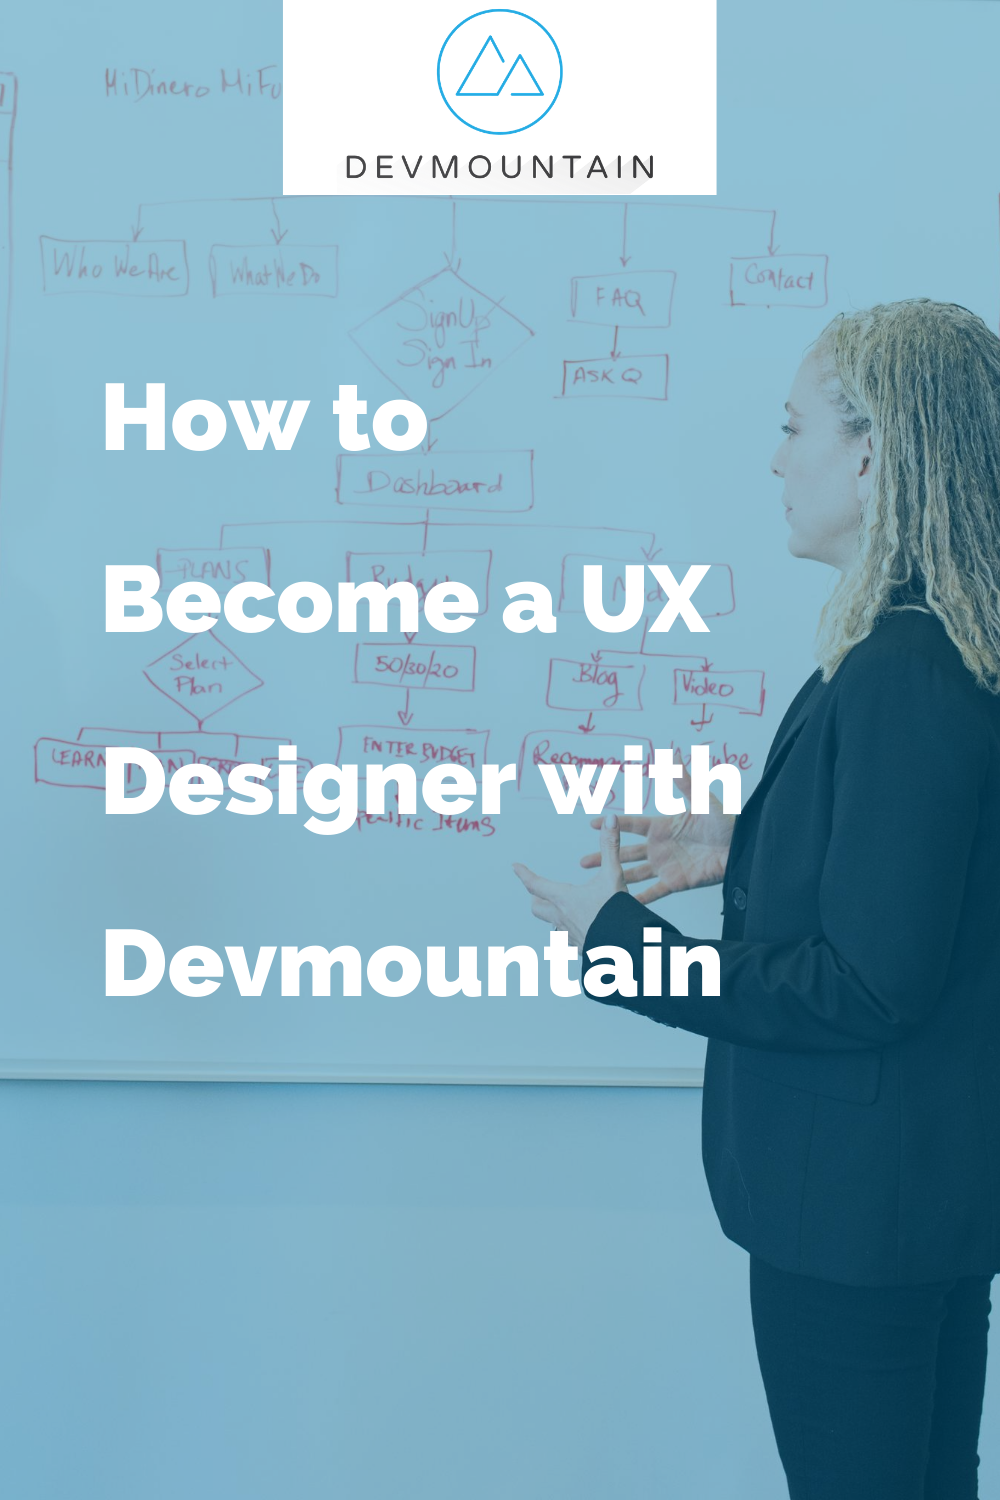 How to Become a UX Designer with Devmountain